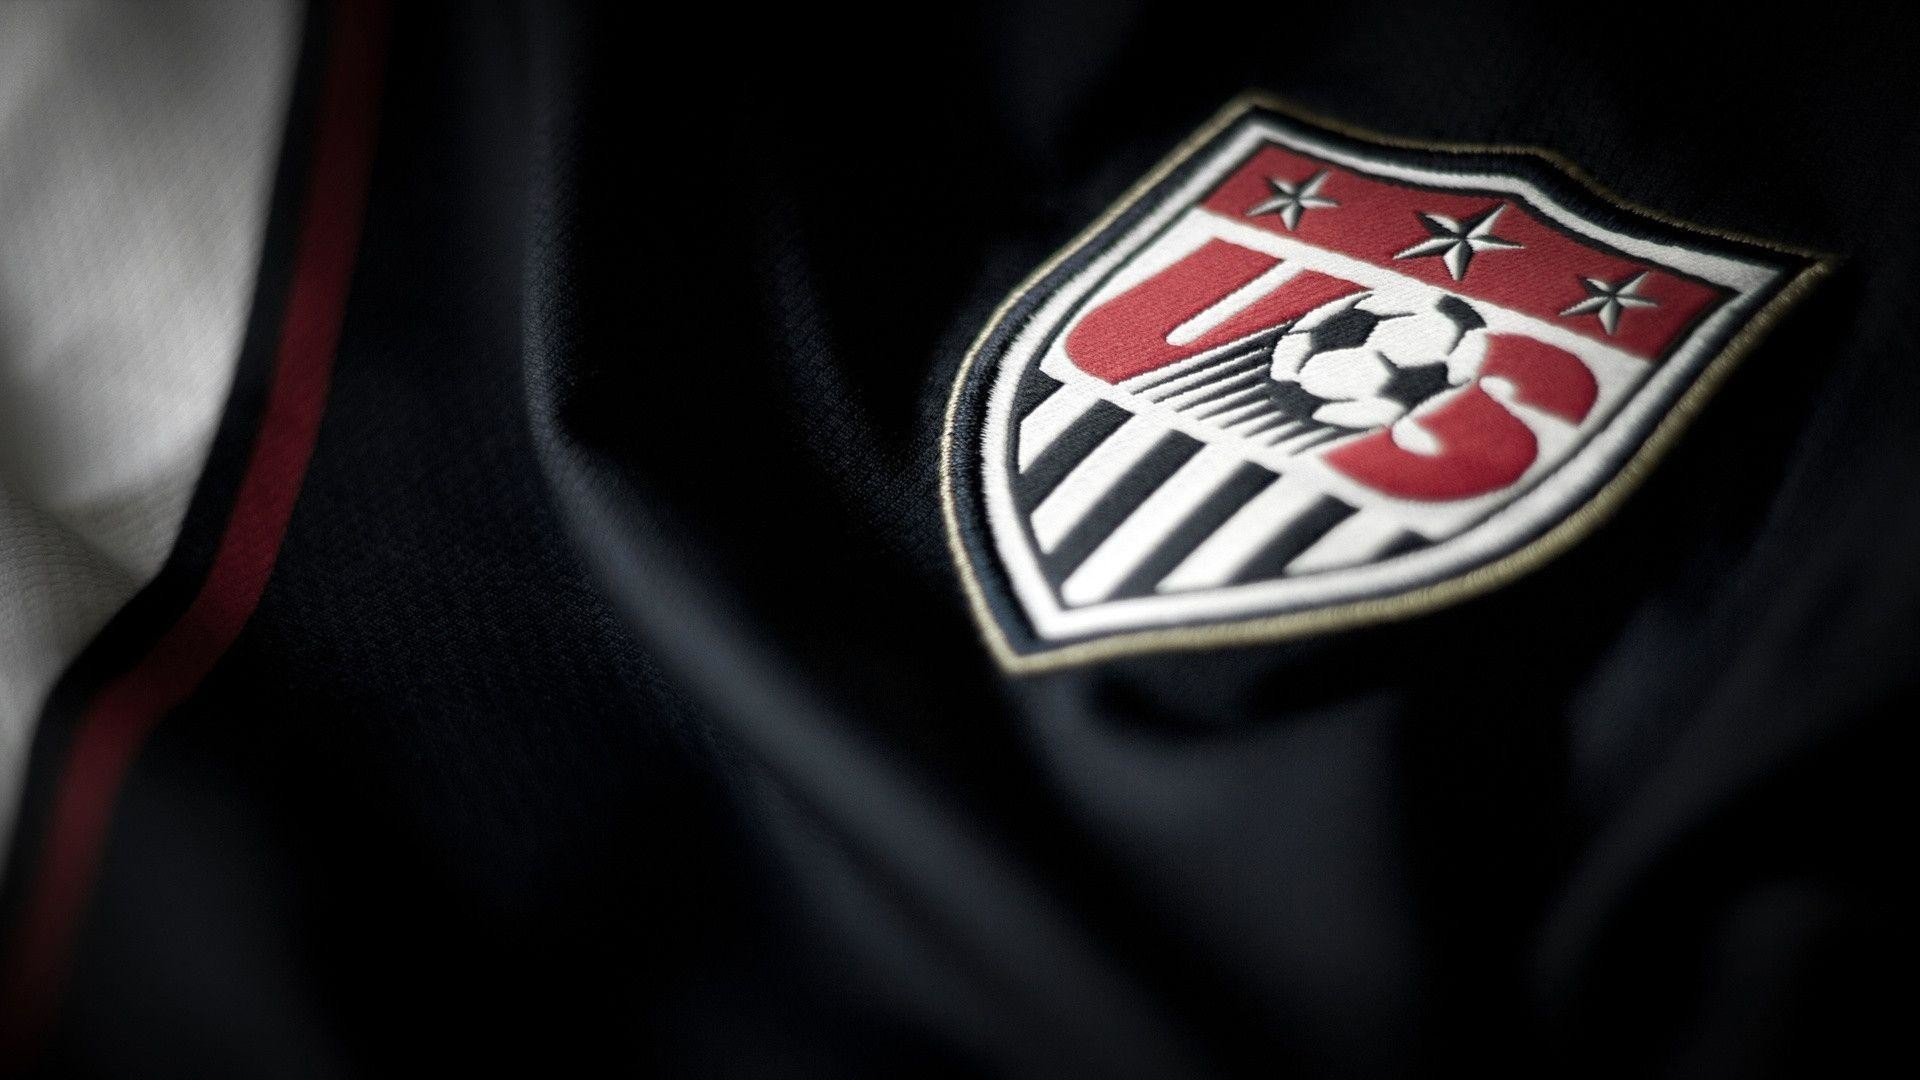 1920x1080 Usa Soccer Logo Png - wallpaper.